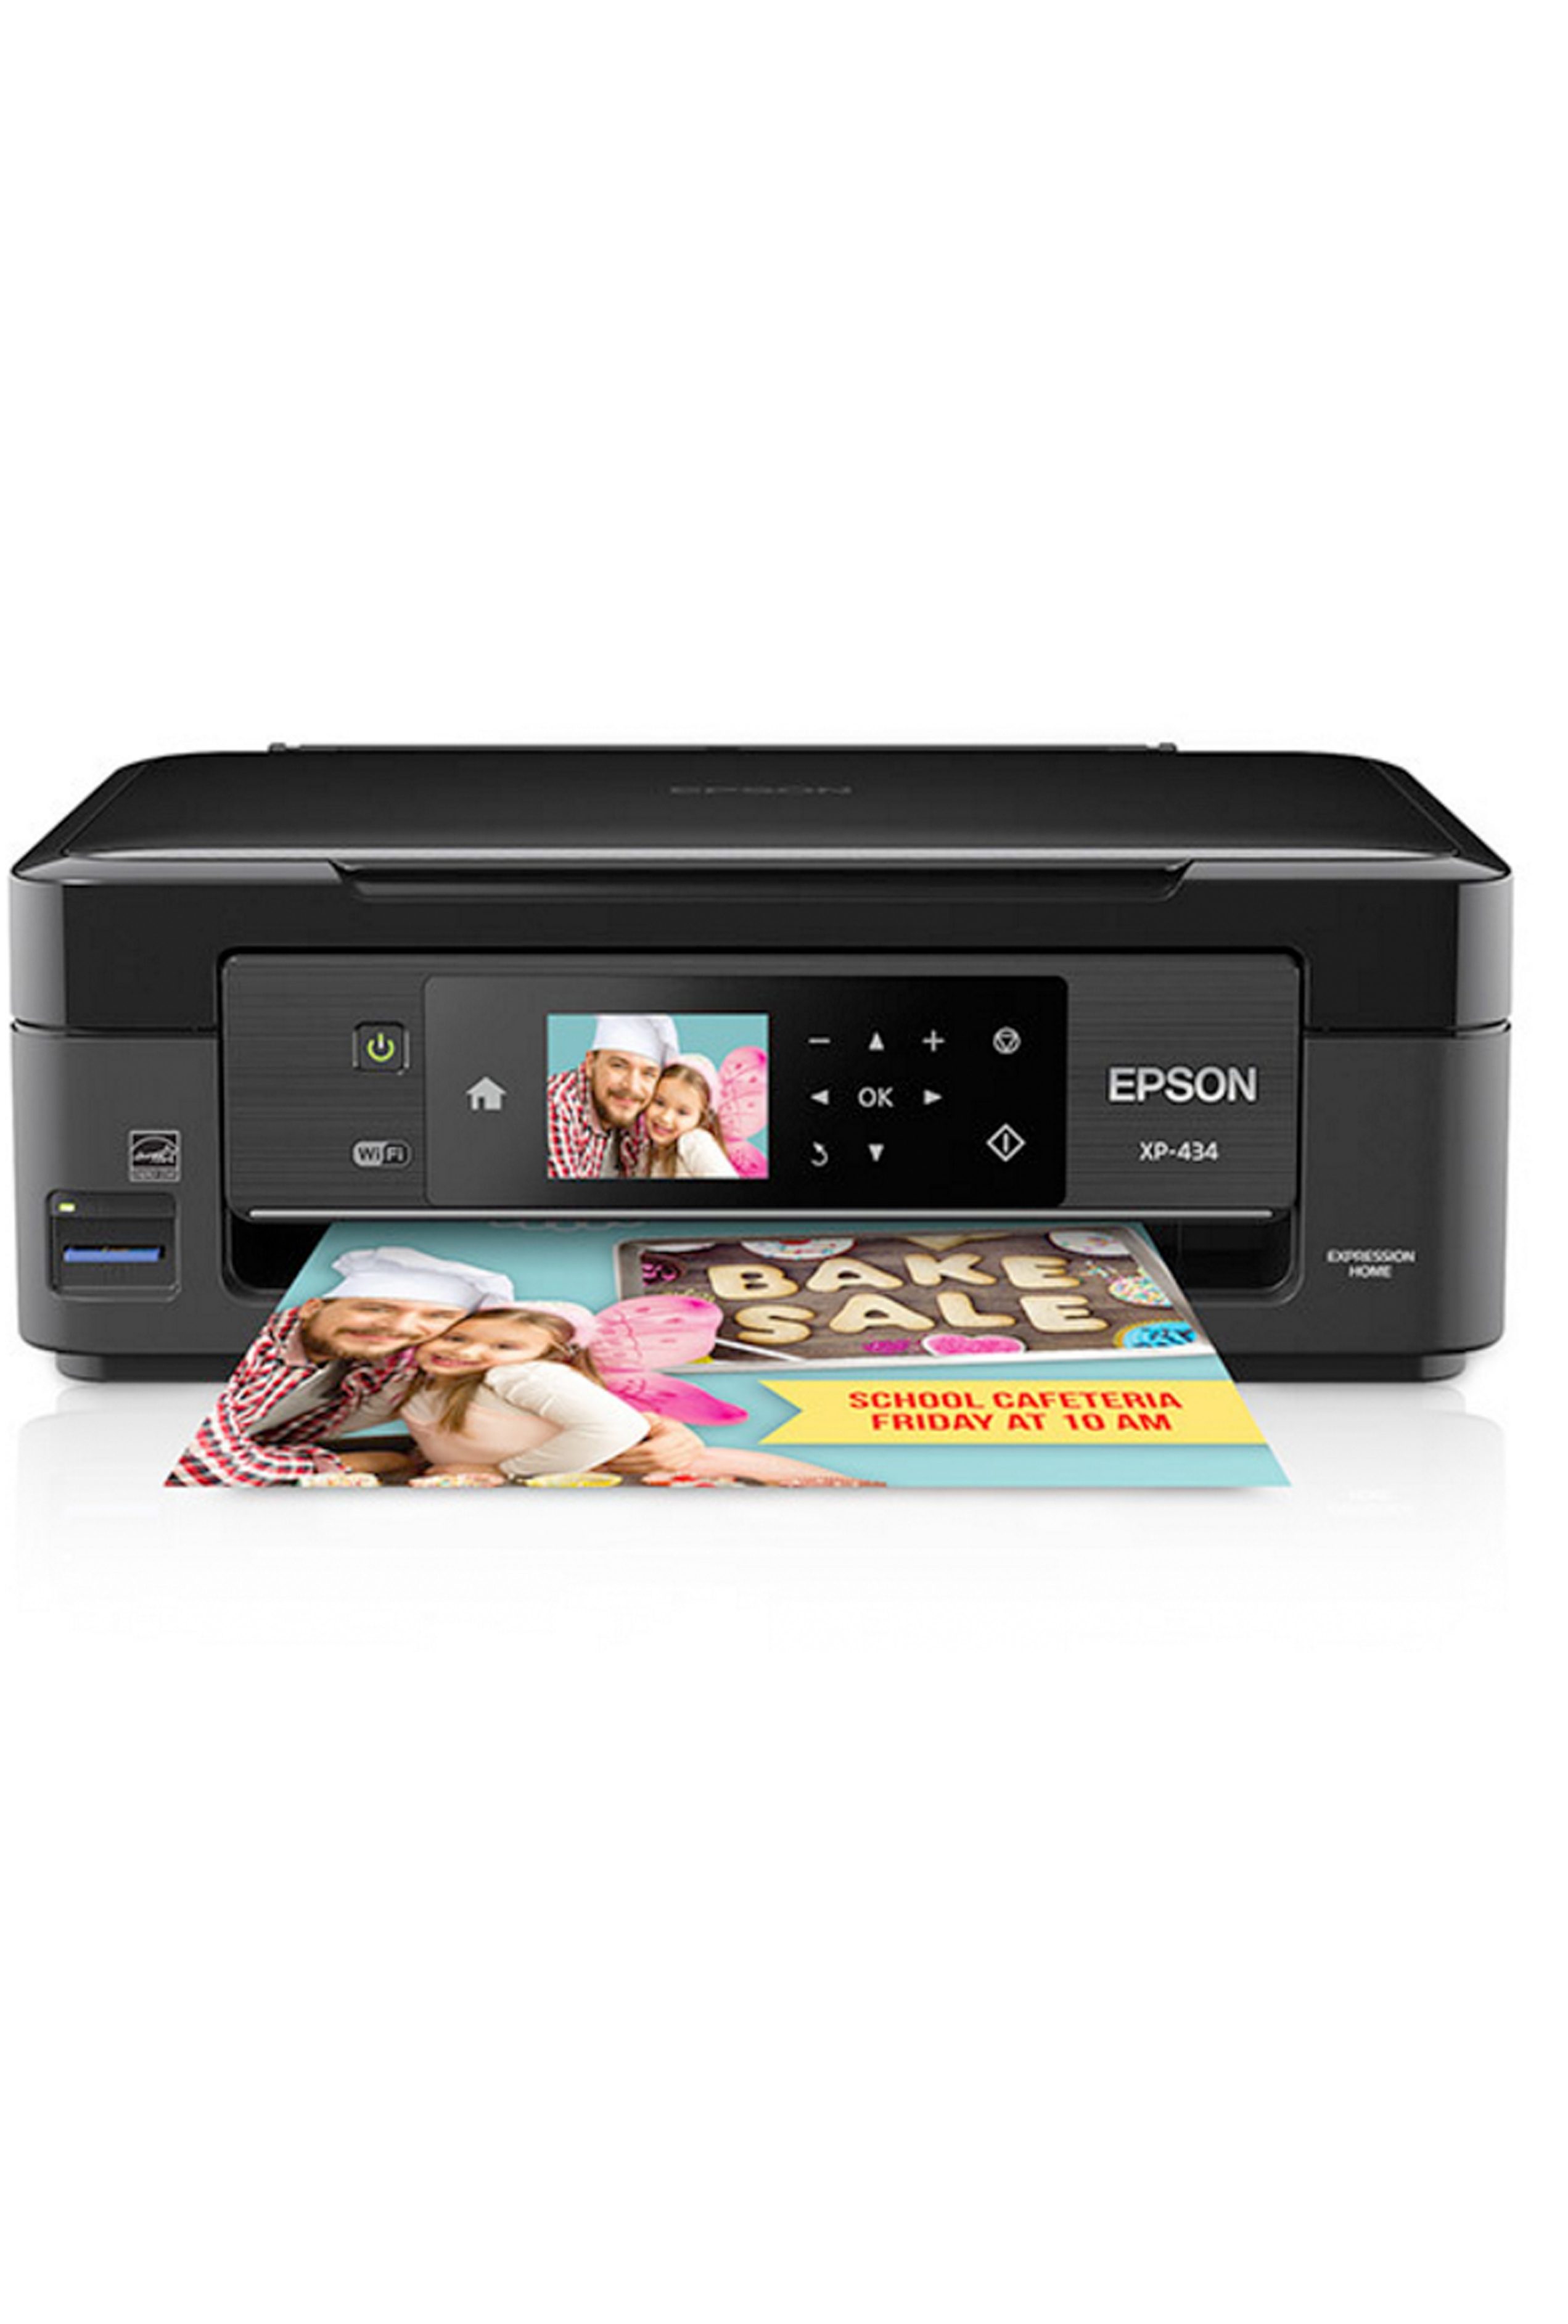 Epson Expression Home XP-434 Small-in-One All-in-One Printer...